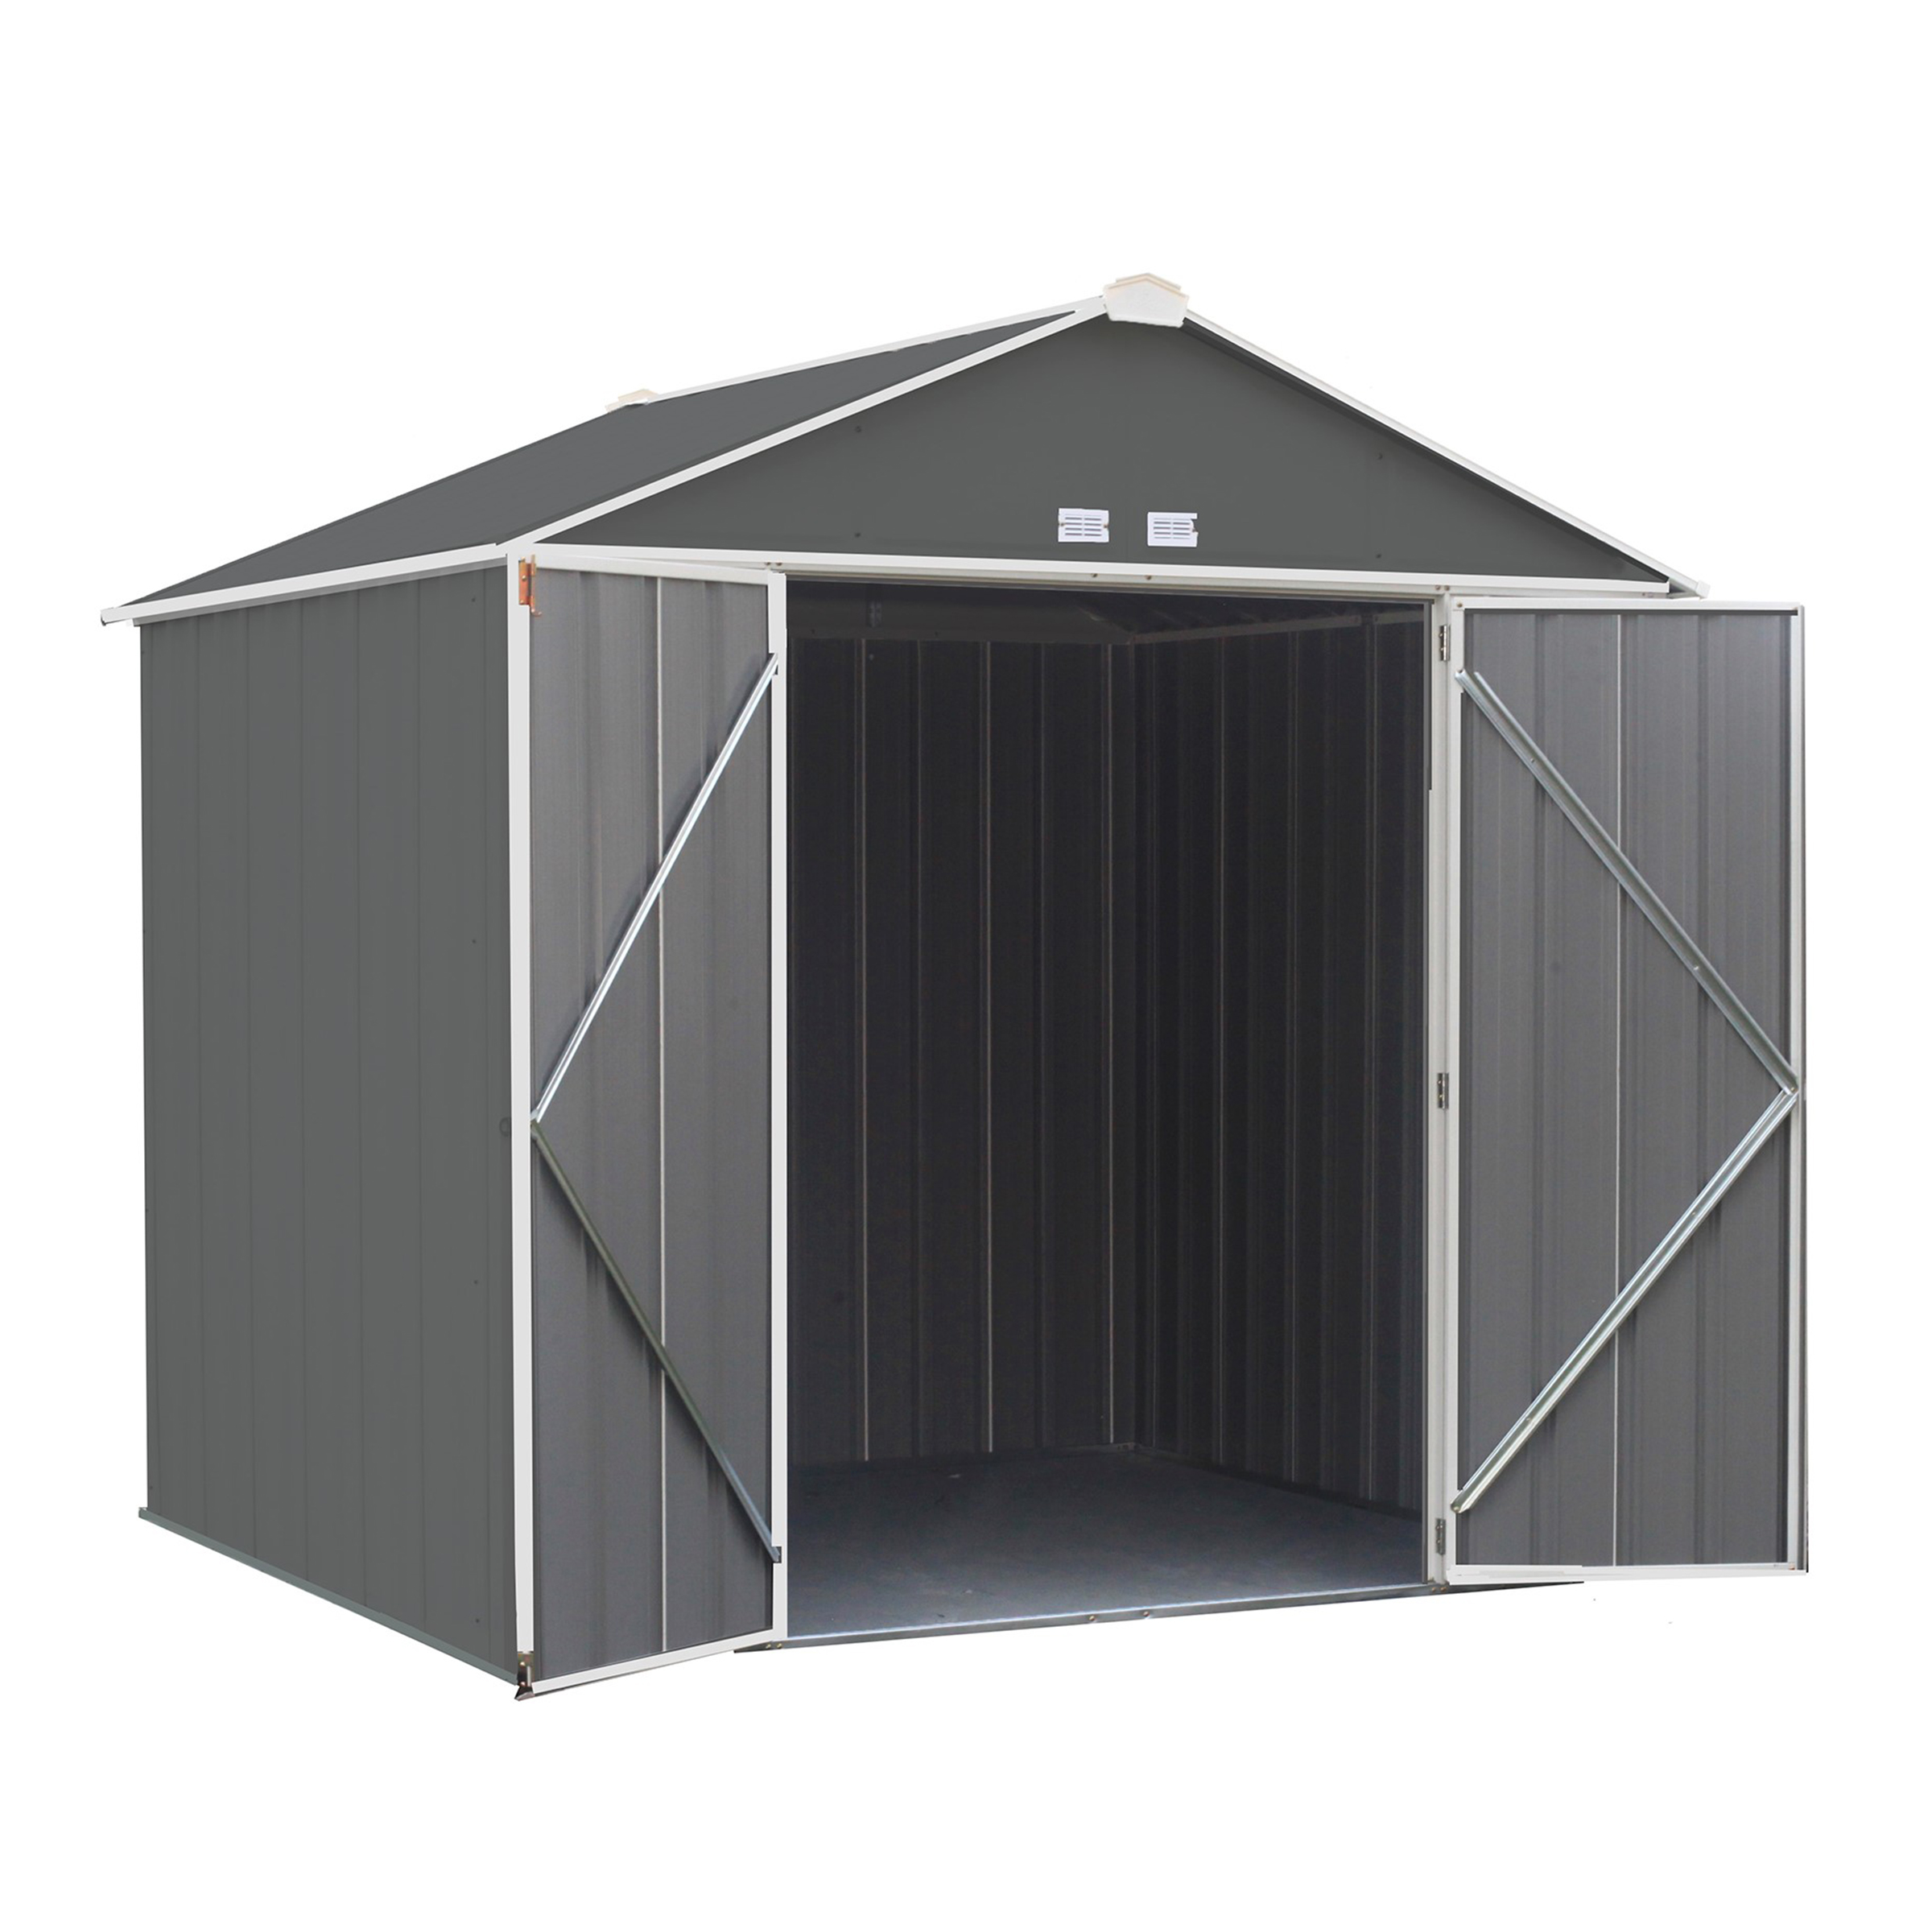 EZEE Shed , 8x7, High Gable, 72 in walls, vents Charcoal & Cream